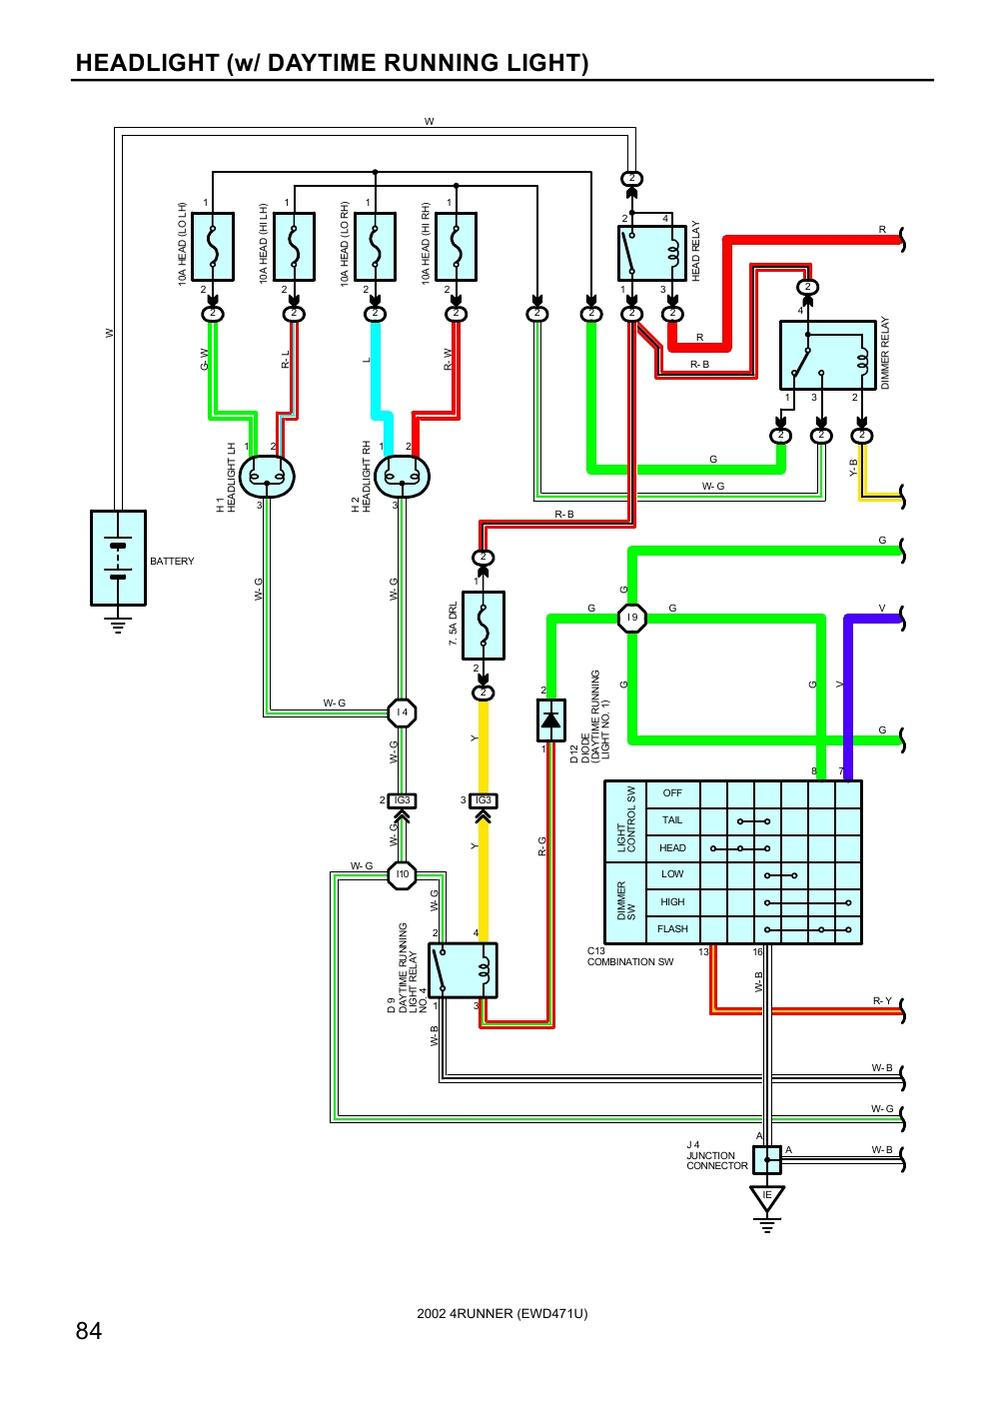 hight resolution of 97 4runner wiring diagram another blog about wiring diagram u2022 rh ok2 infoservice ru